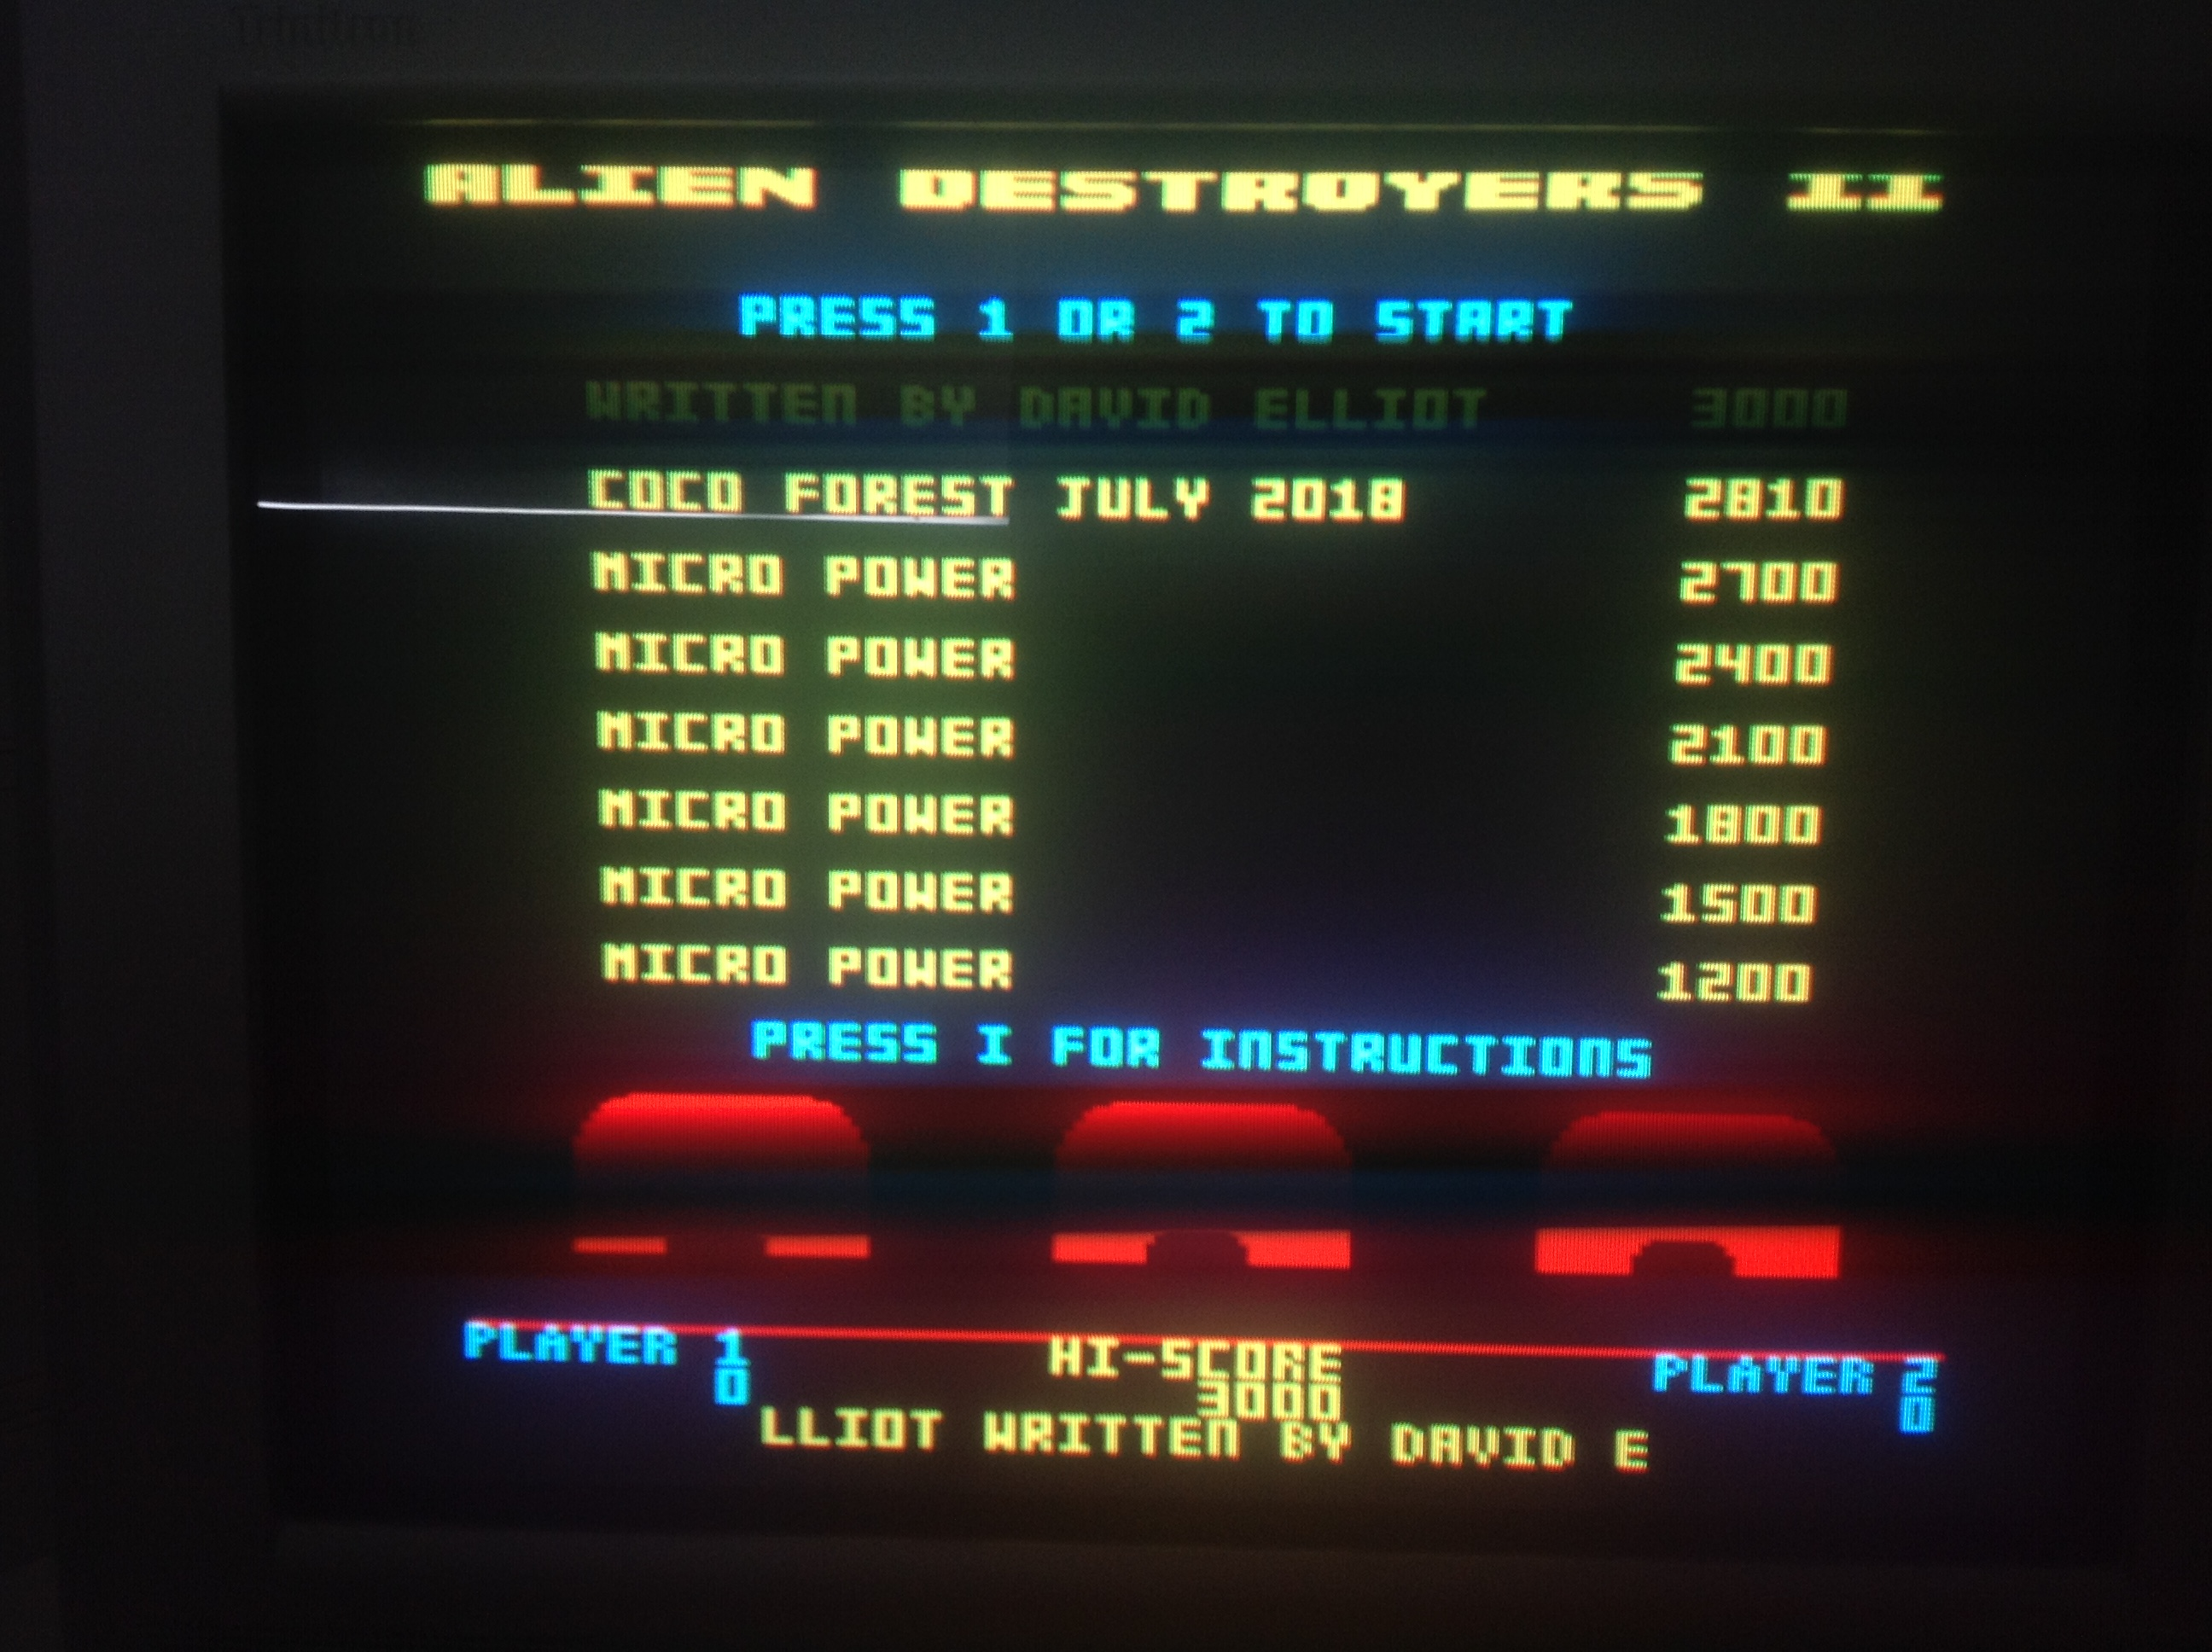 CoCoForest: Alien Destroyers 2 (BBC Micro) 2,810 points on 2018-07-02 08:00:30